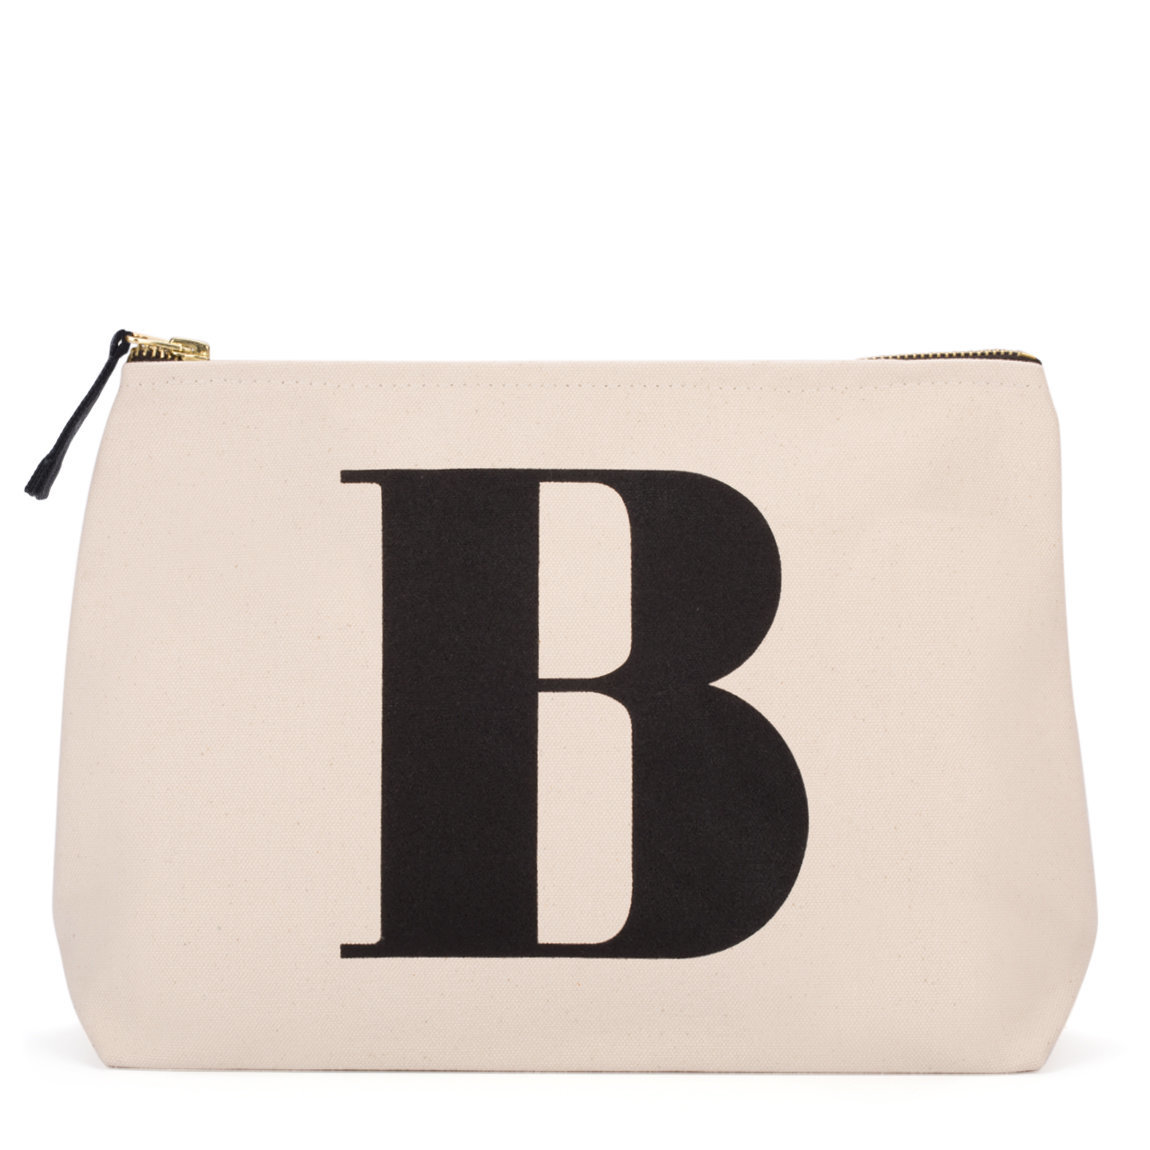 Alphabet Bags Natural Wash Bag Letter B product smear.